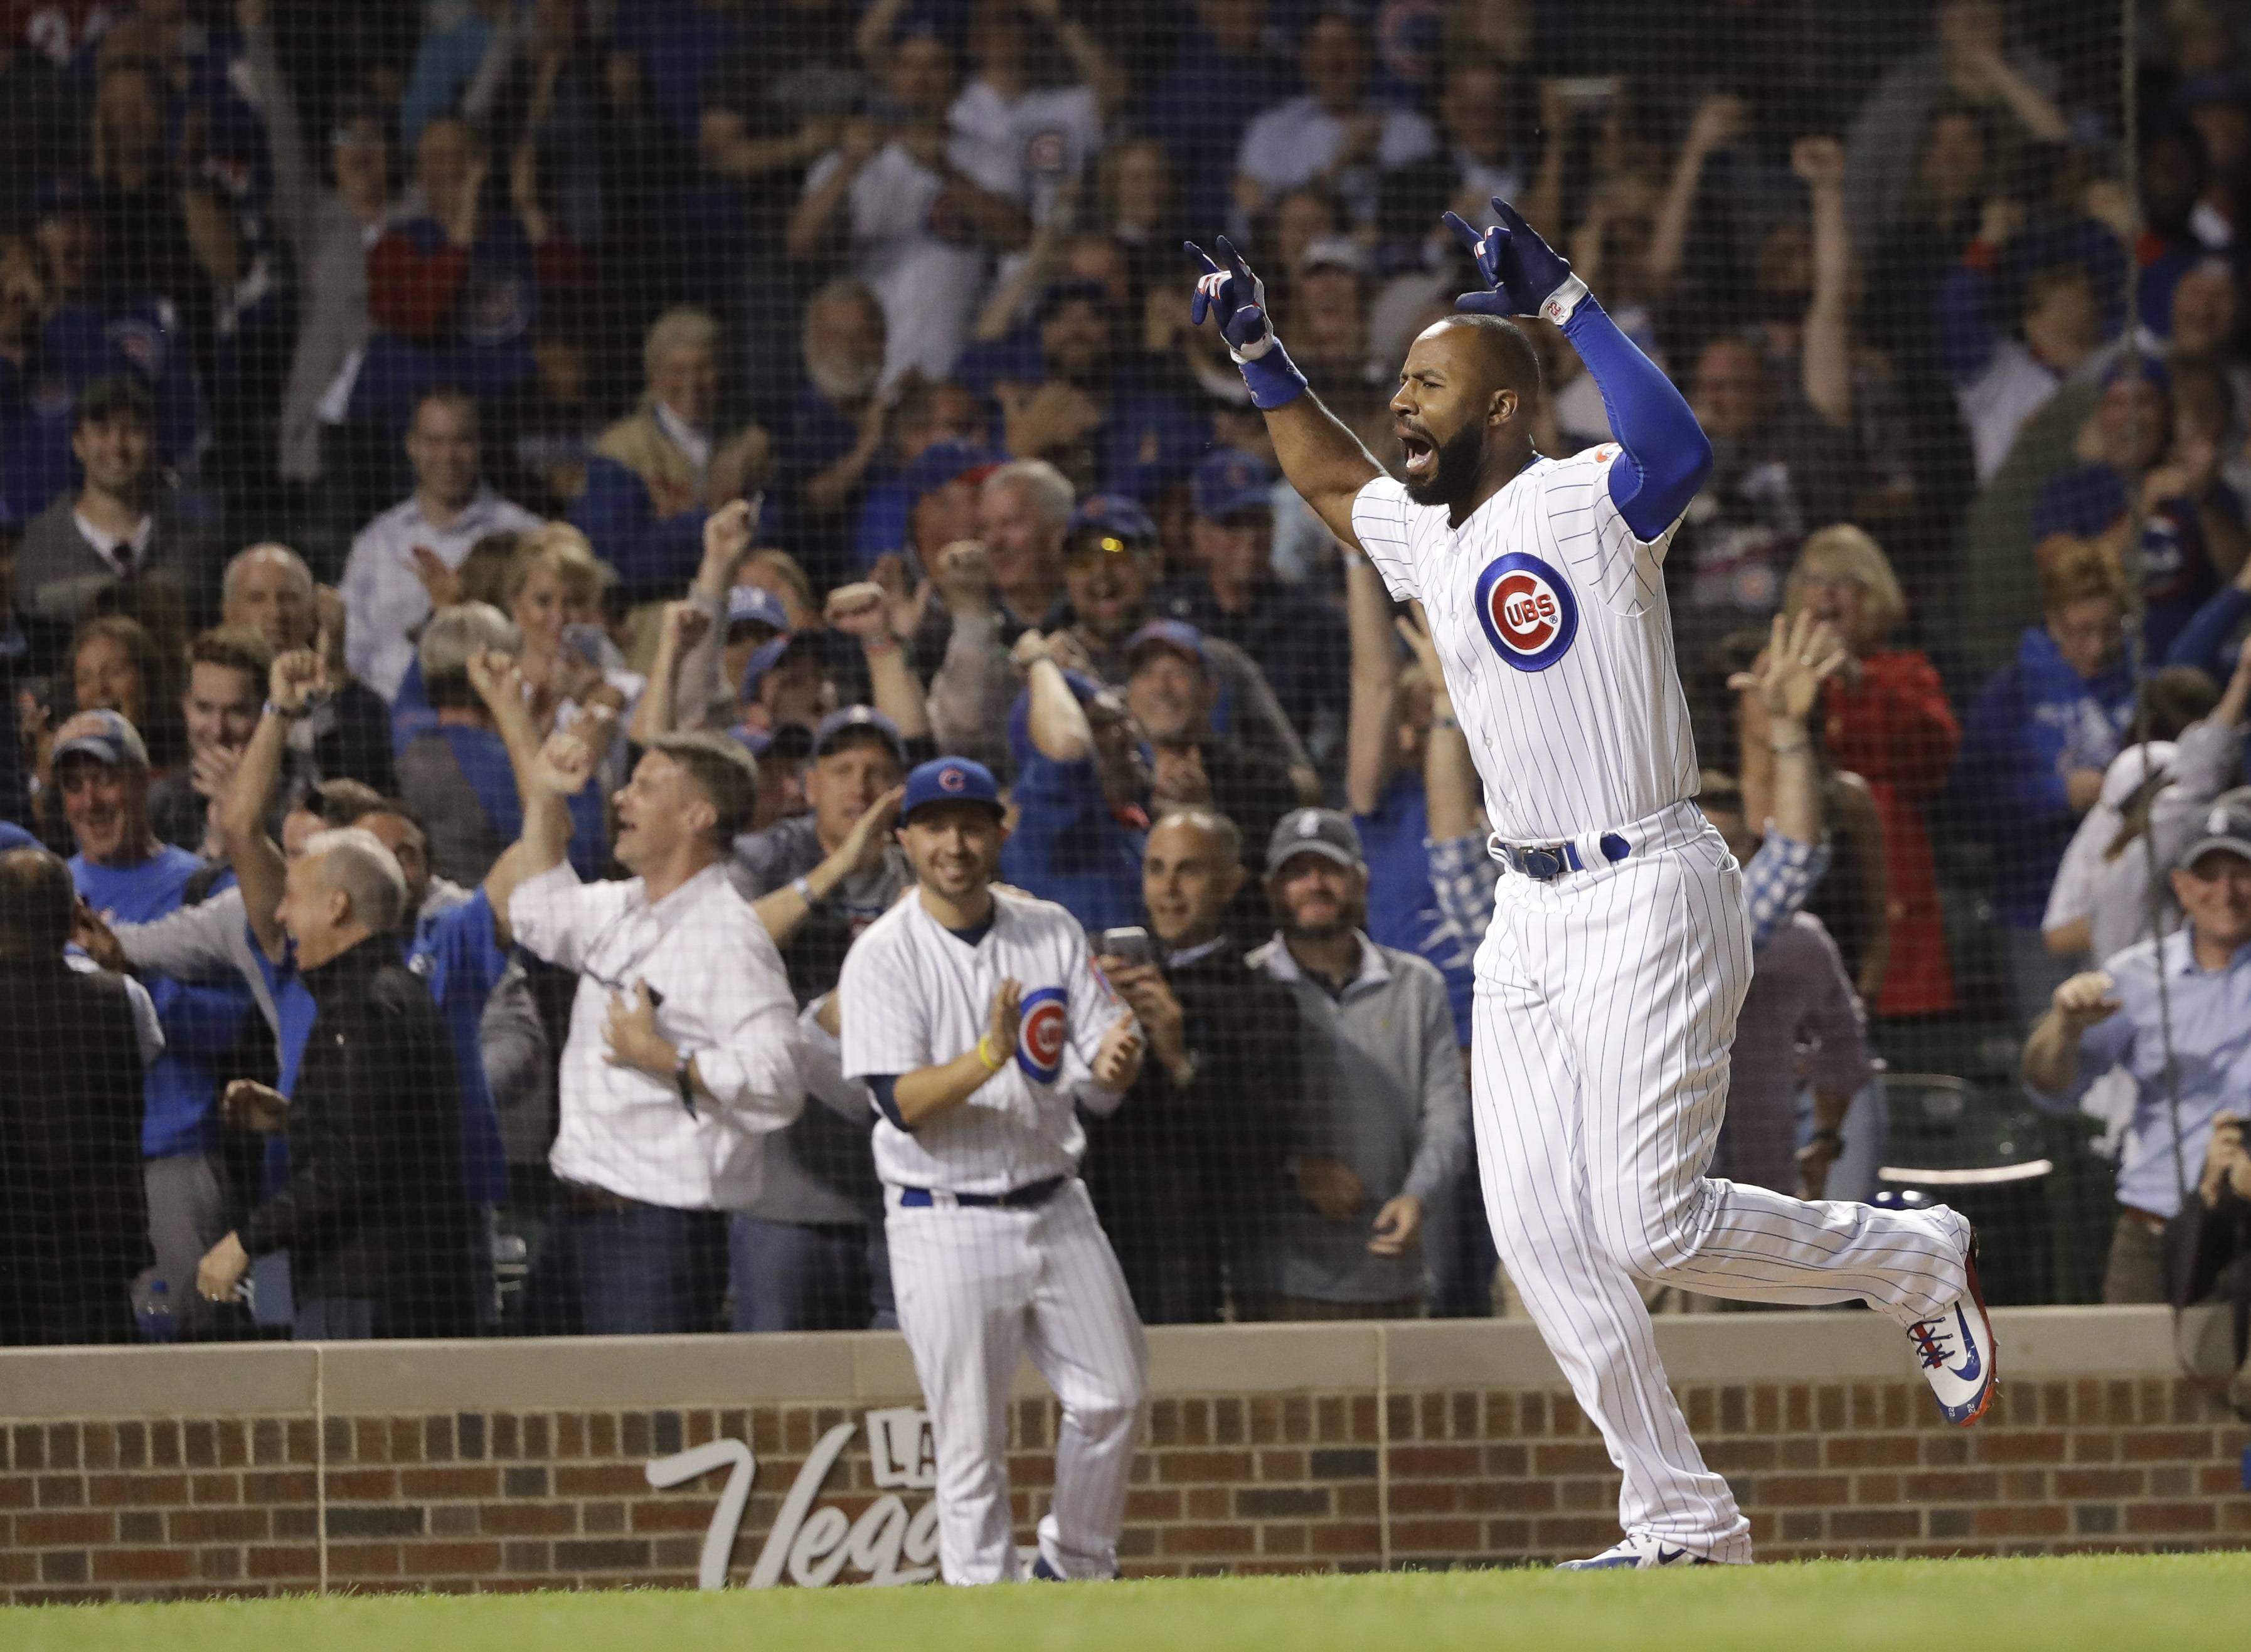 Heyward wins it for Chicago Cubs with grand slam